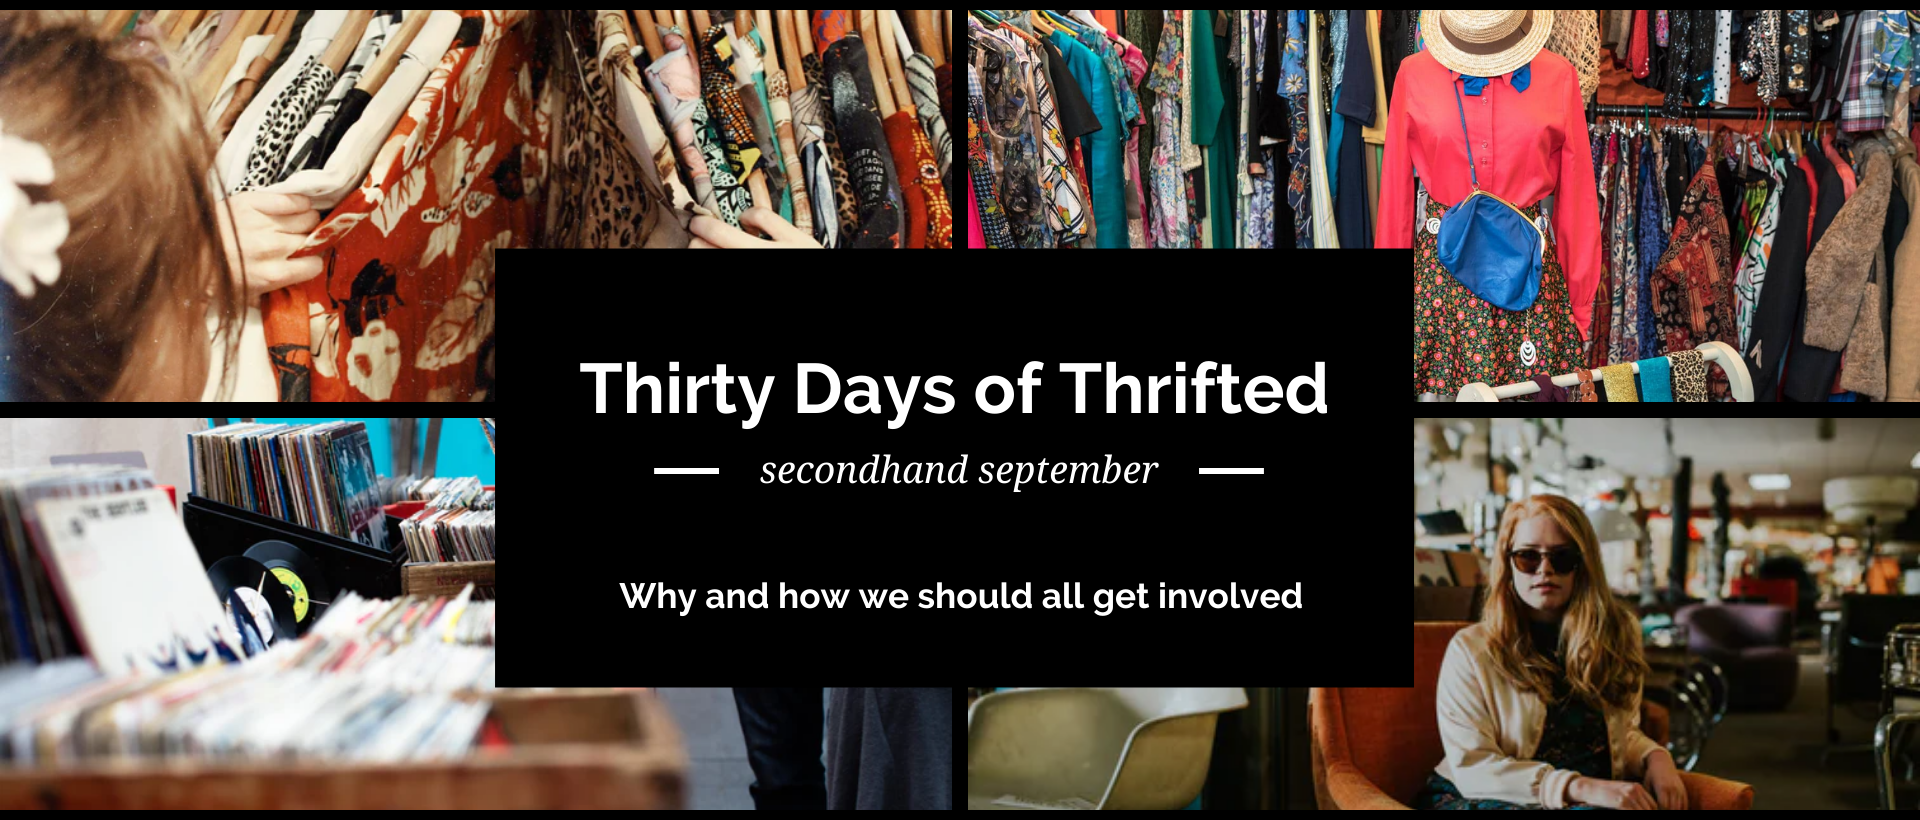 Thirty Days of Thrifted - Why and how you should get involved